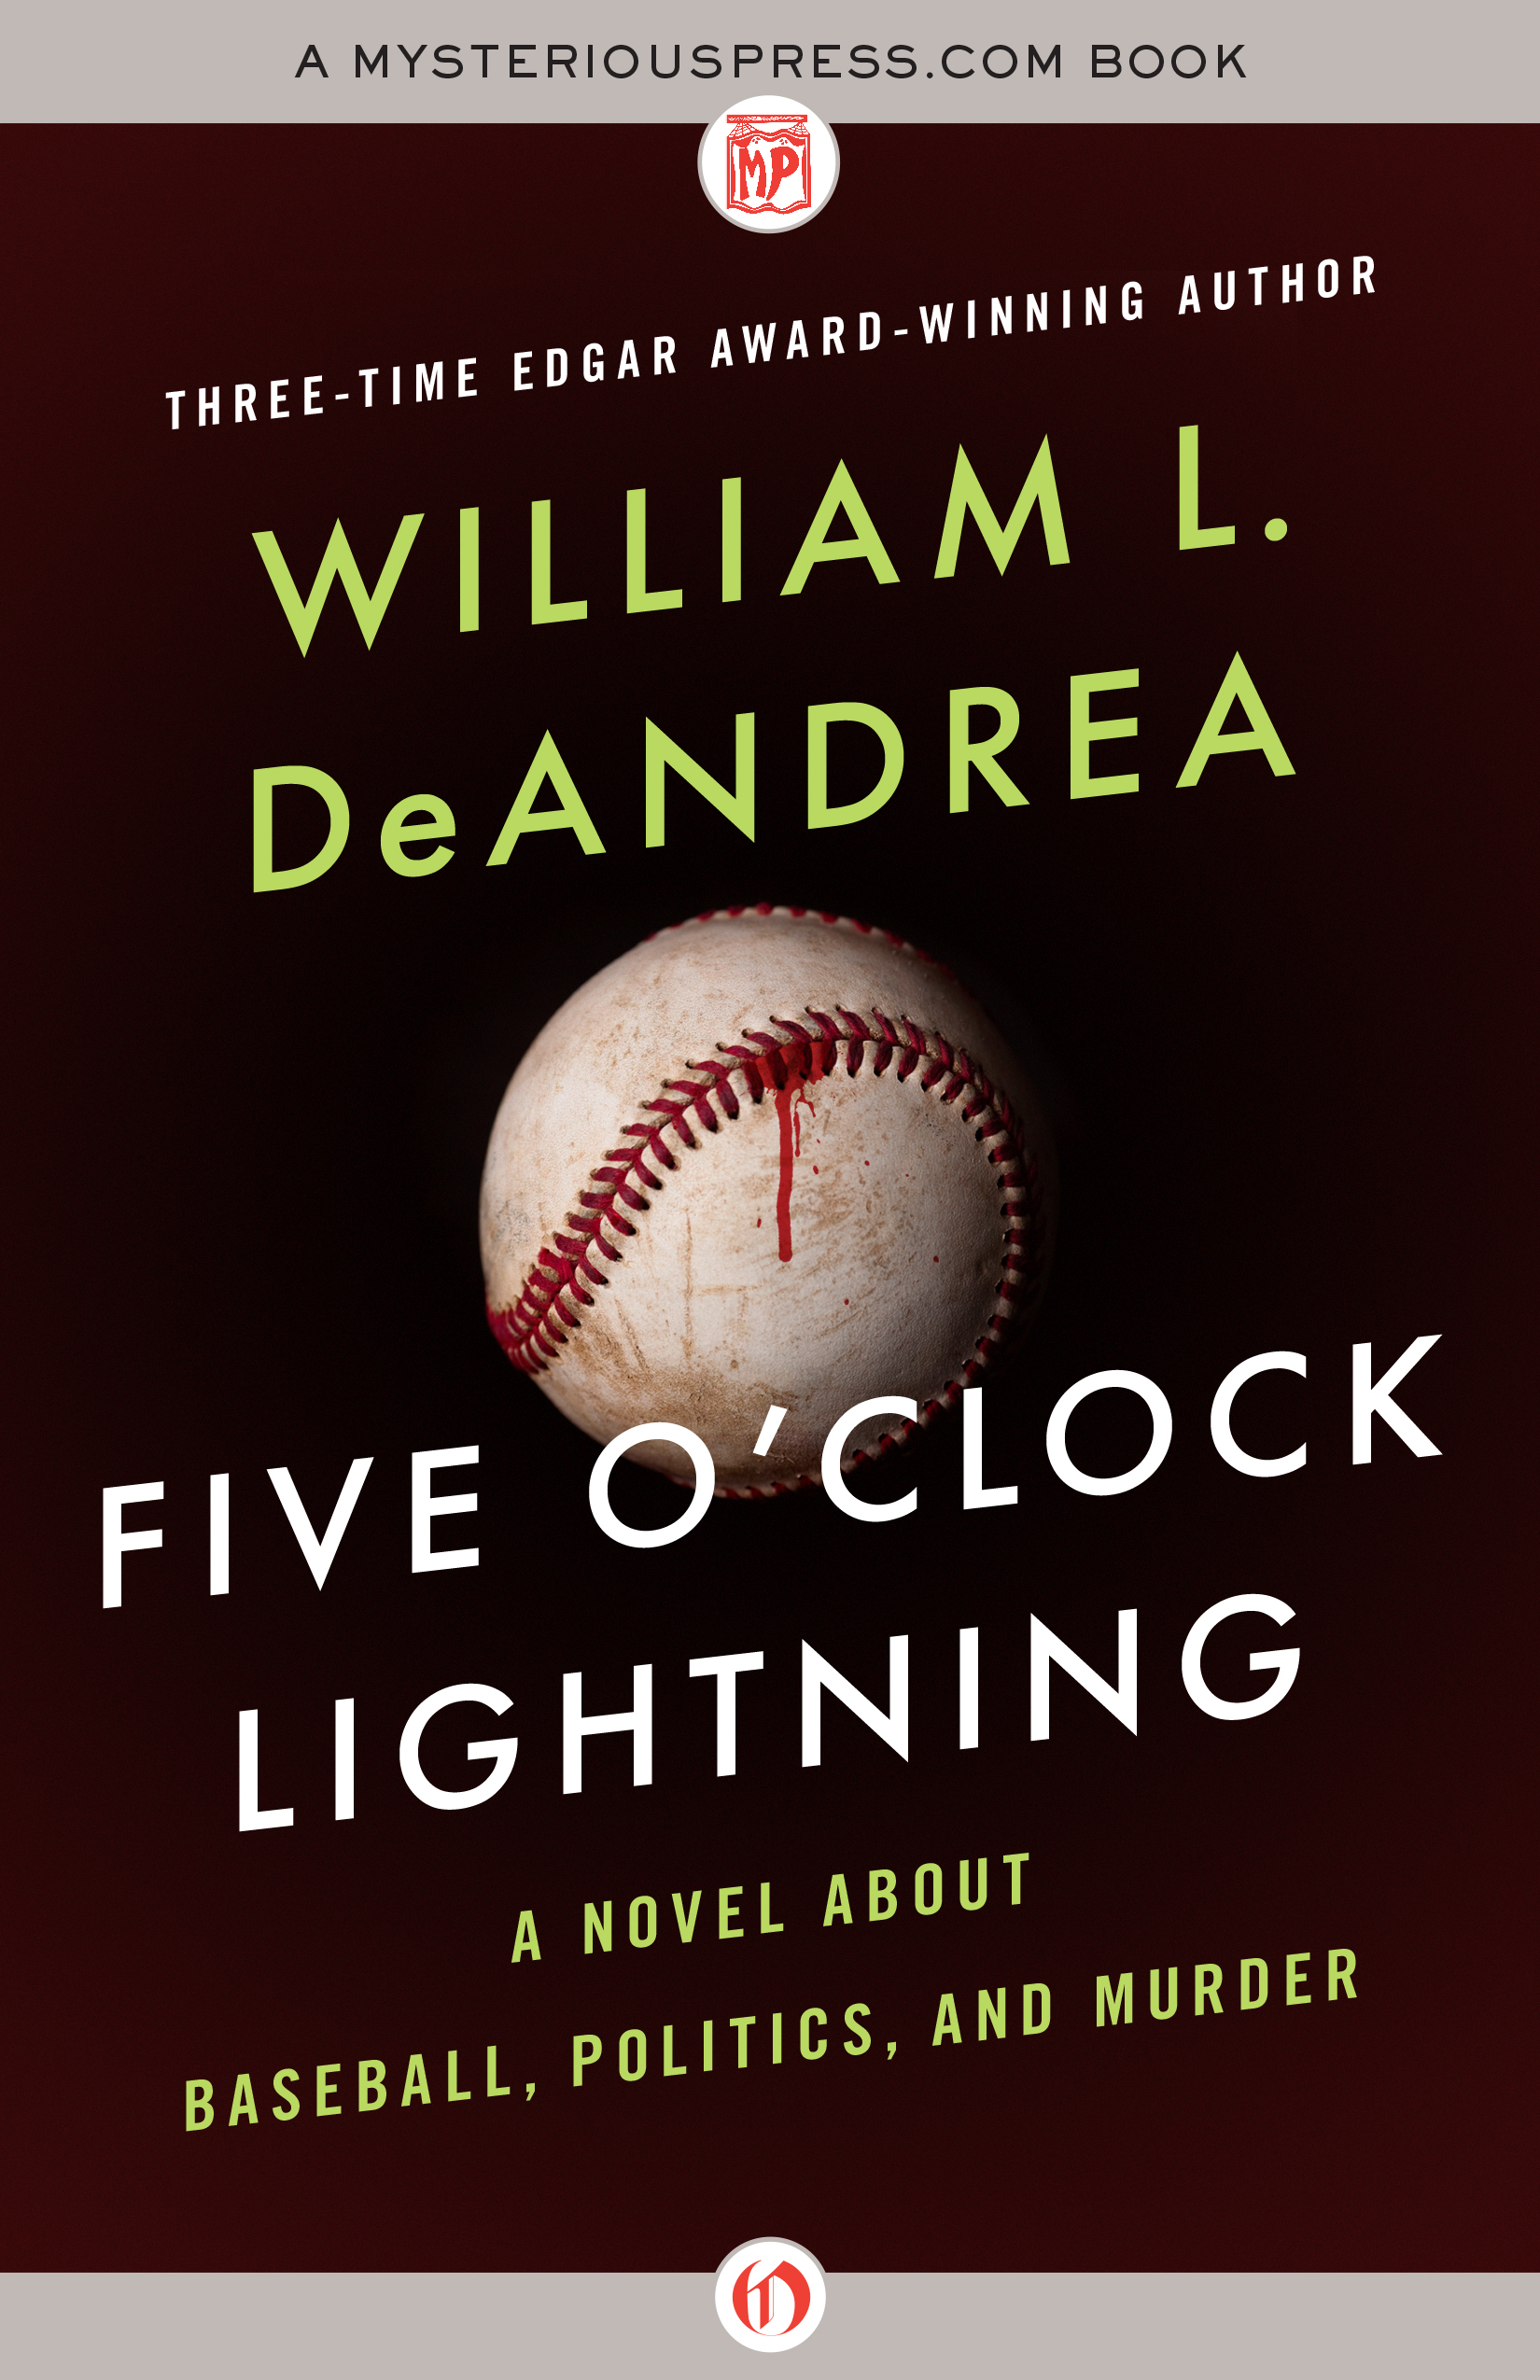 Five O'Clock Lightning: A Novel About Baseball, Politics, and Murder